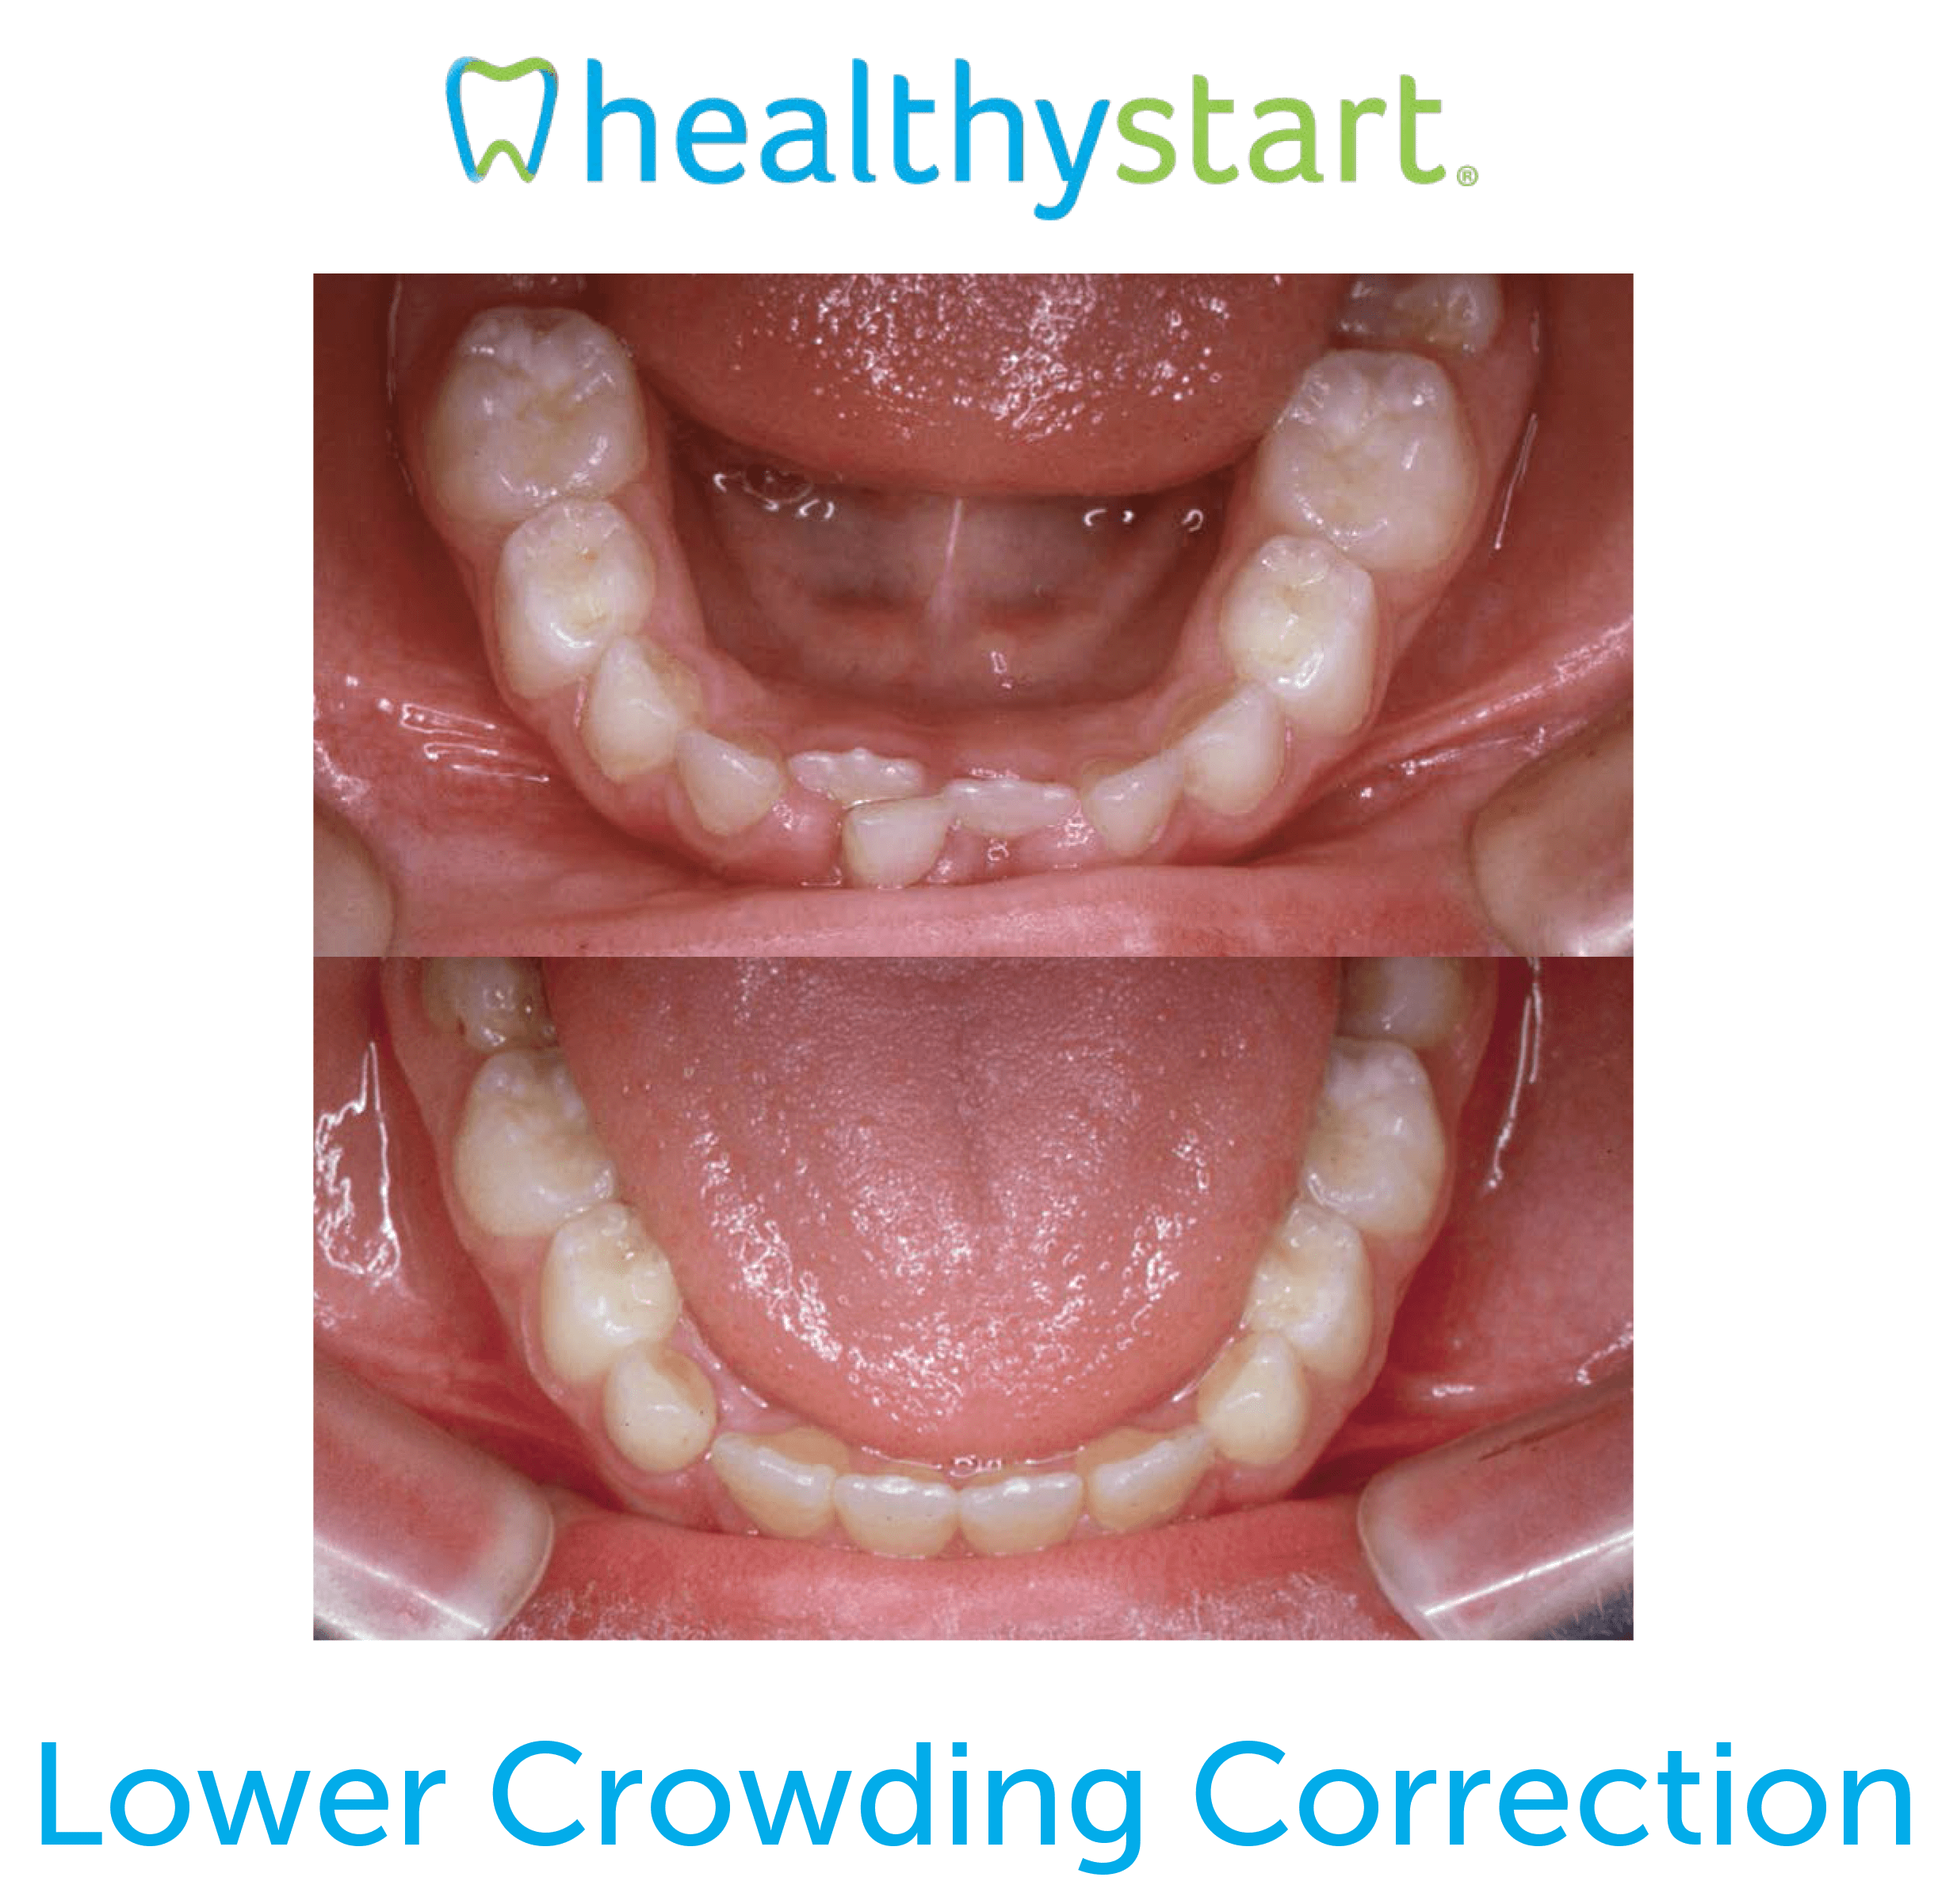 Lower Crowding Correction